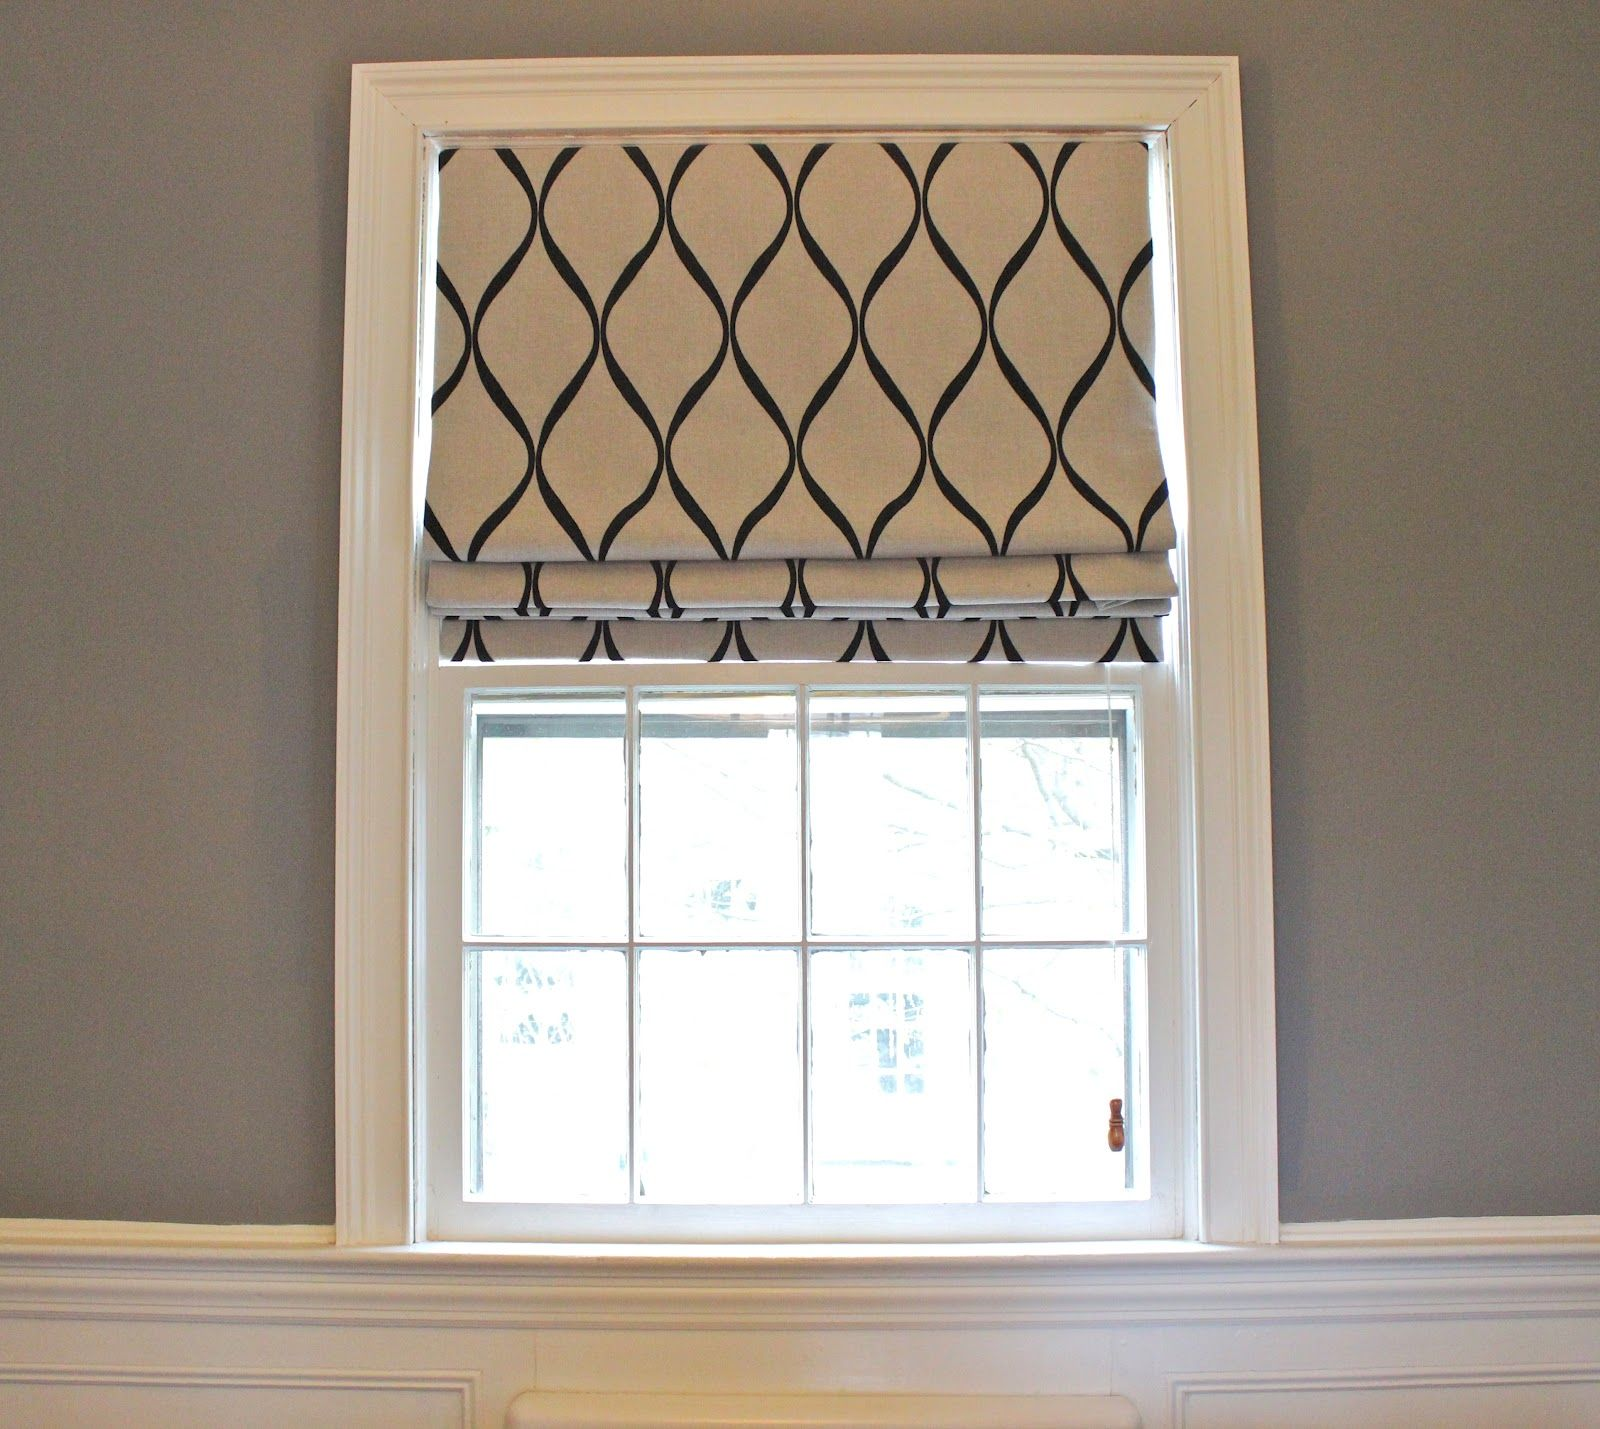 Exciting Home Fashion Using Cordless Roman Shades Charming With Window Molding And